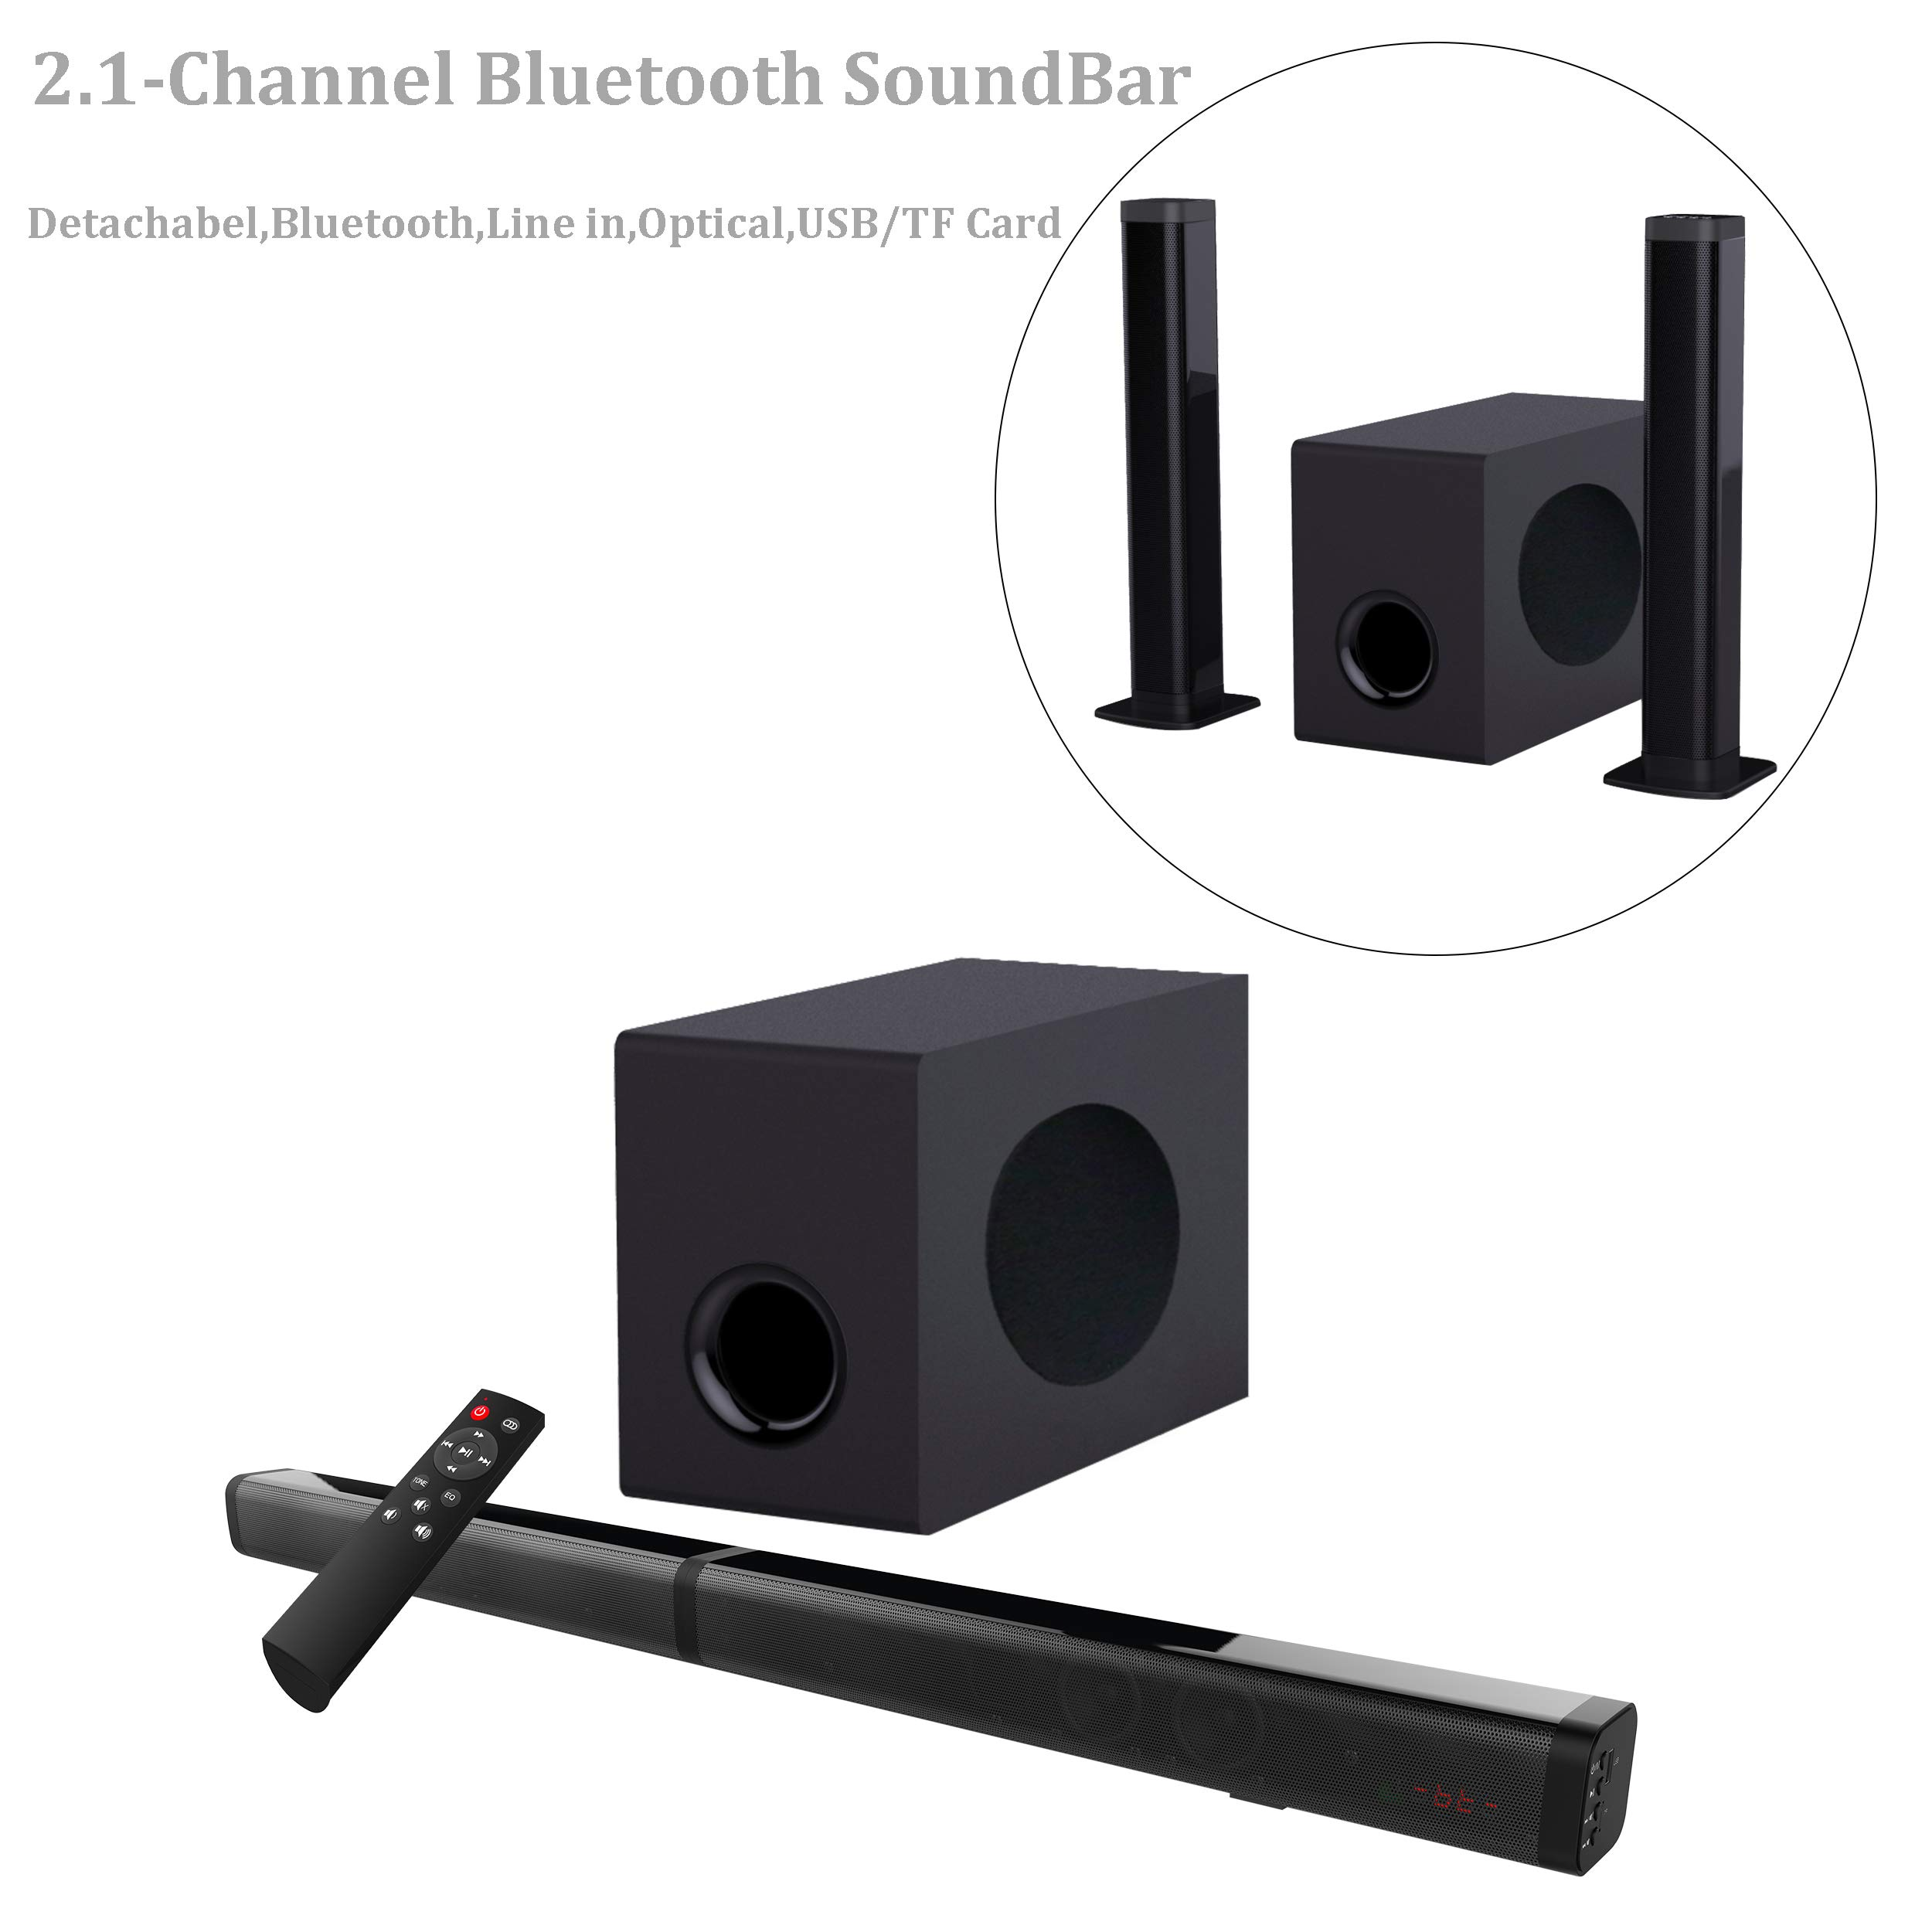 Sound Bar with Subwoofer, Samtronic Detachable Soundbar for TV 37 Inch 100W 2.1 Channel Speaker, Wireless & Wired Bluetooth 4.2 Sound Bars, Home Theater Surround Sound, Remote Control, Wall Mountable